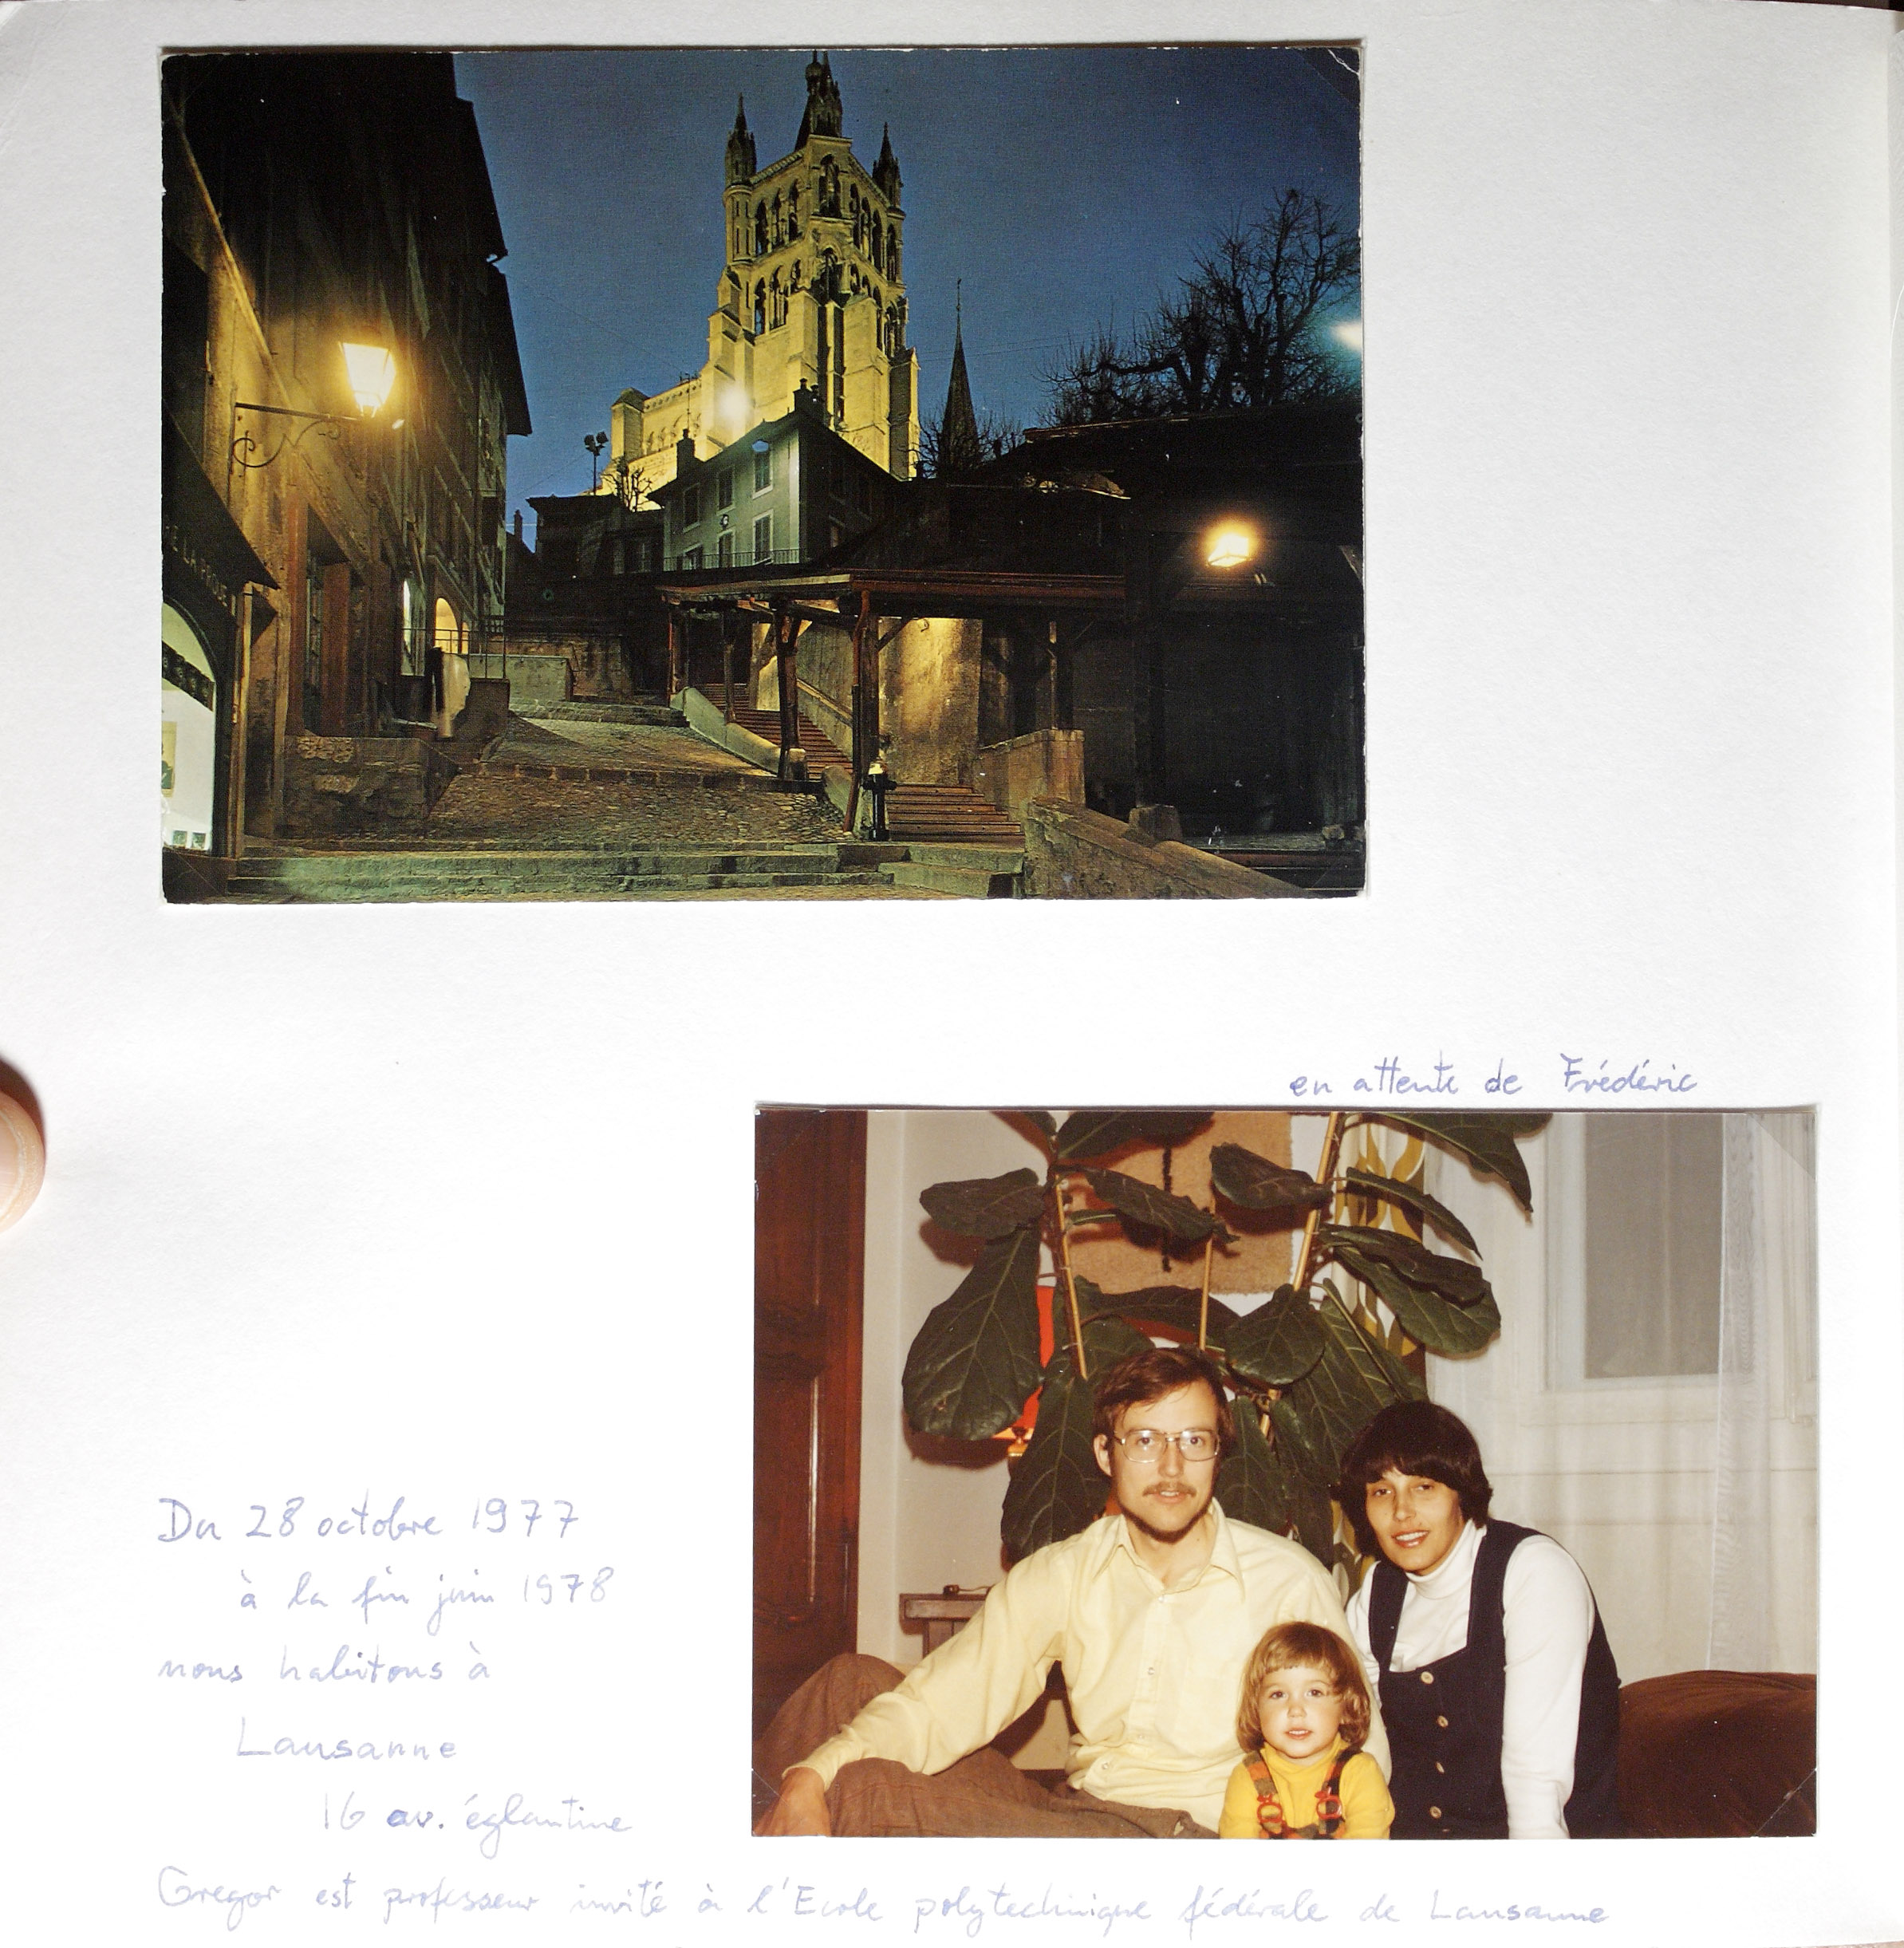 1977-78 - I was invited prof at EPFL, Lausanne.jpg 6.5K